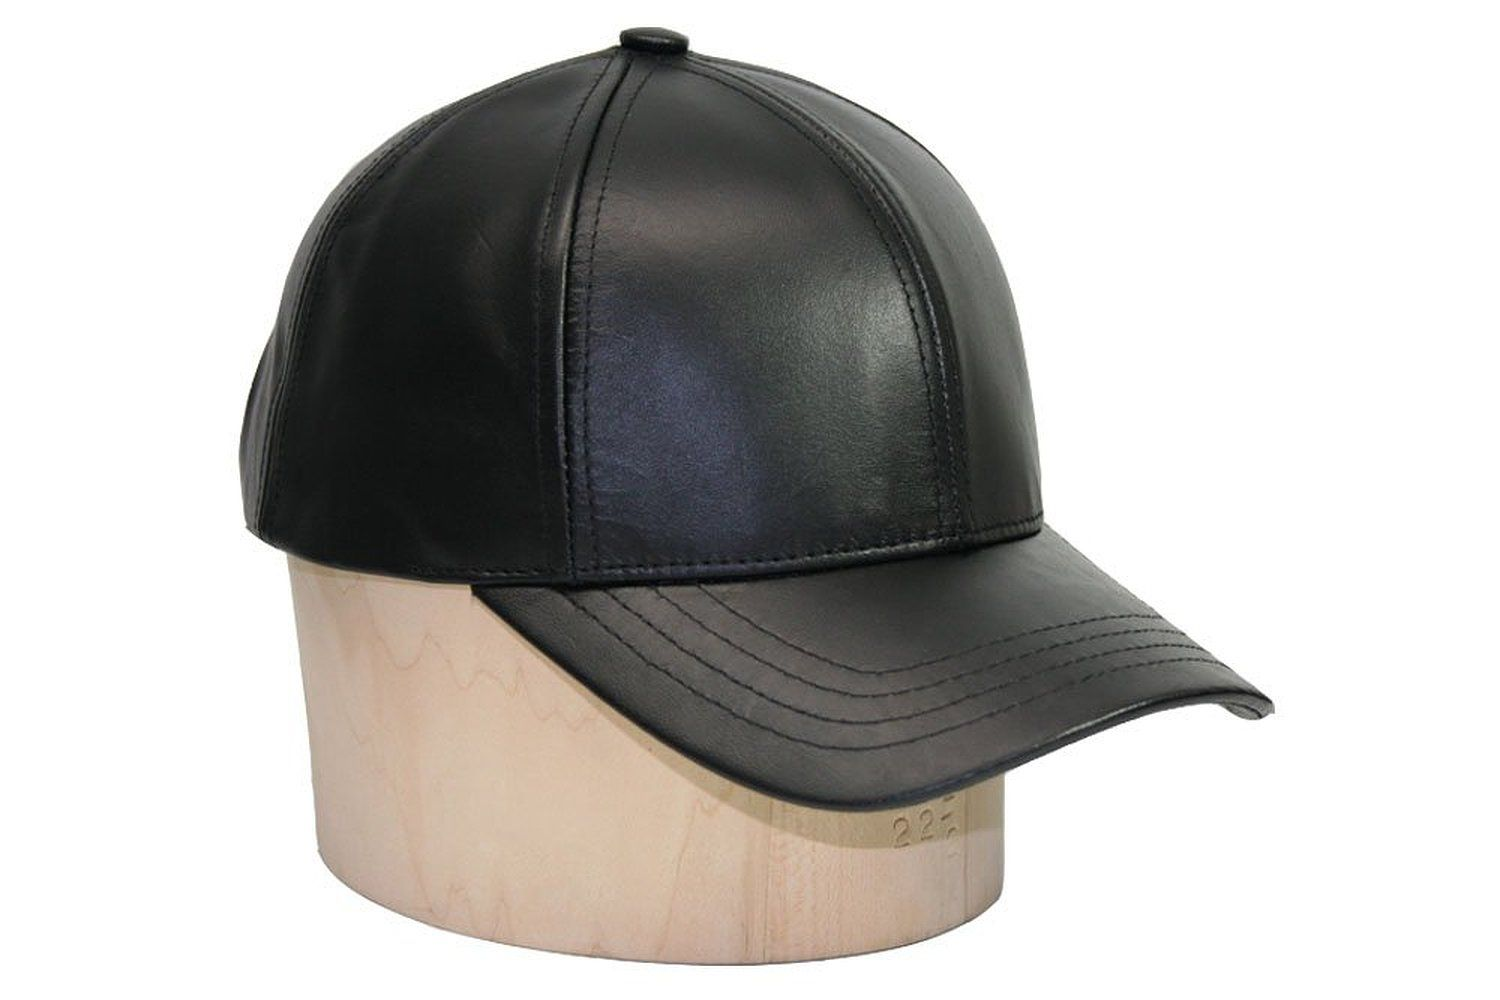 db8ec54c6ec Black Leather Adjustable Baseball Cap Hat Made in USA at Amazon Women s  Clothing store  Leather Caps Hats Men